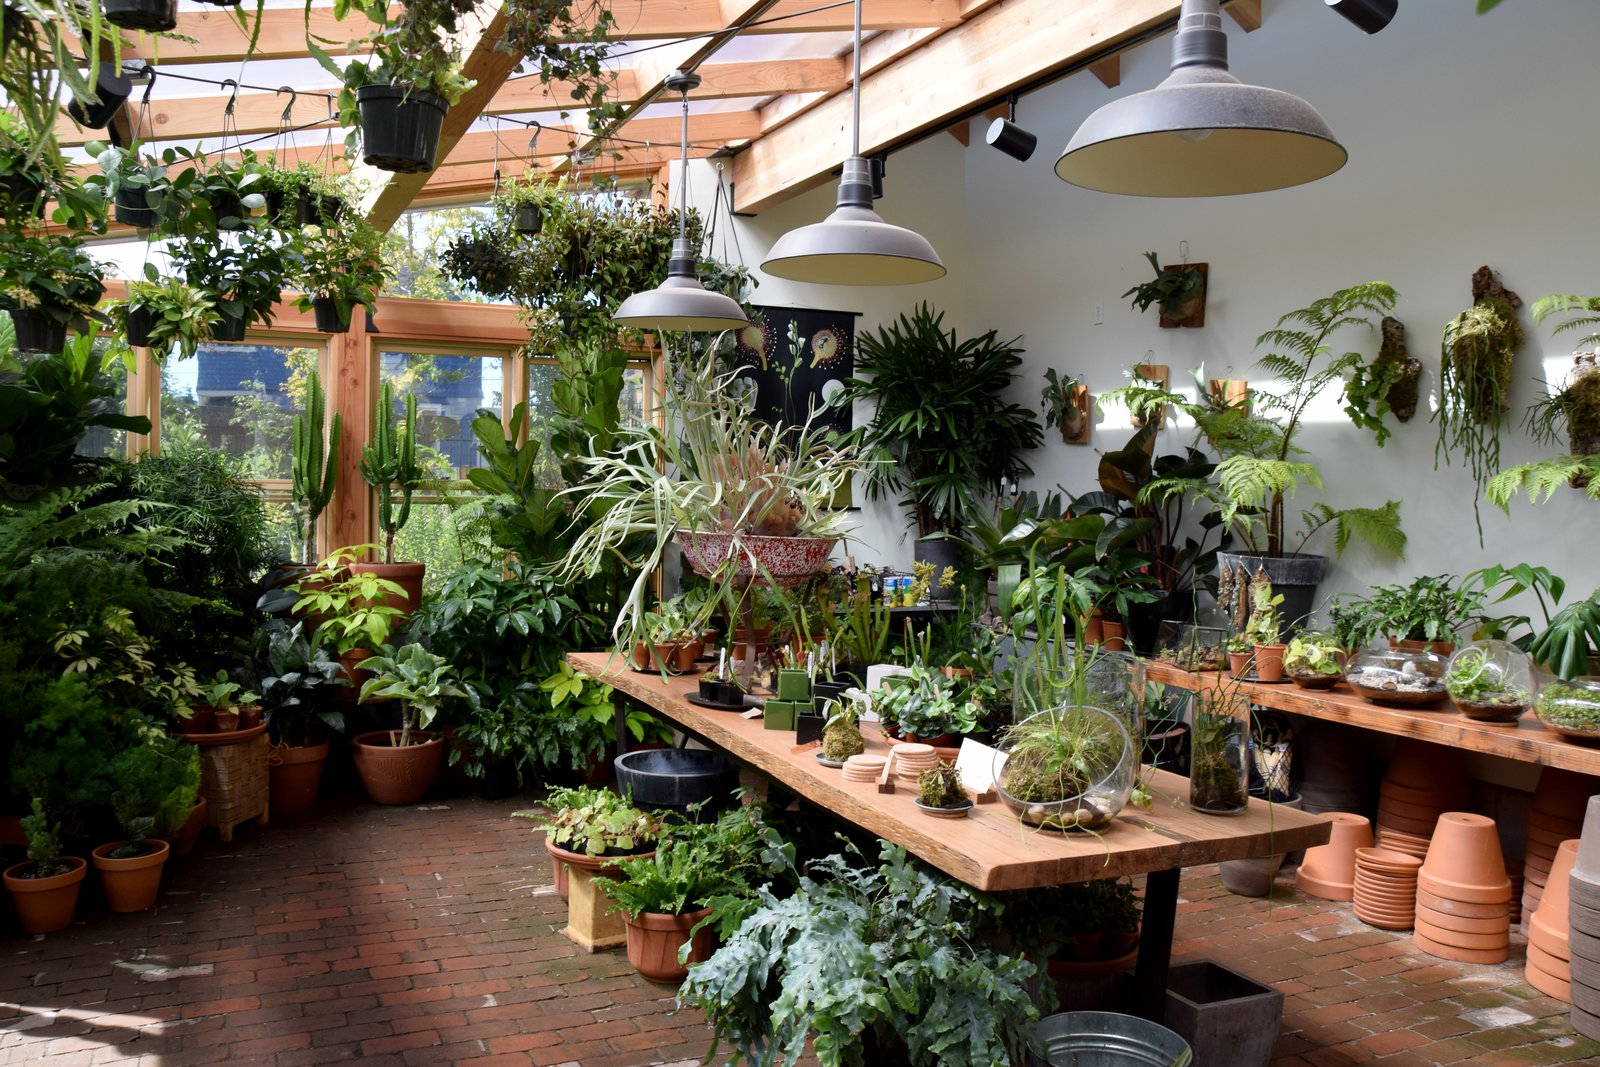 In the sun room, Pistils offers to pot any plant you purchase from them. In the back garden area, you can purchase the perfect plant and meet the chickens that hang out around the on-site chicken coop.  Lush Life from A Weekend in Portland: Part II